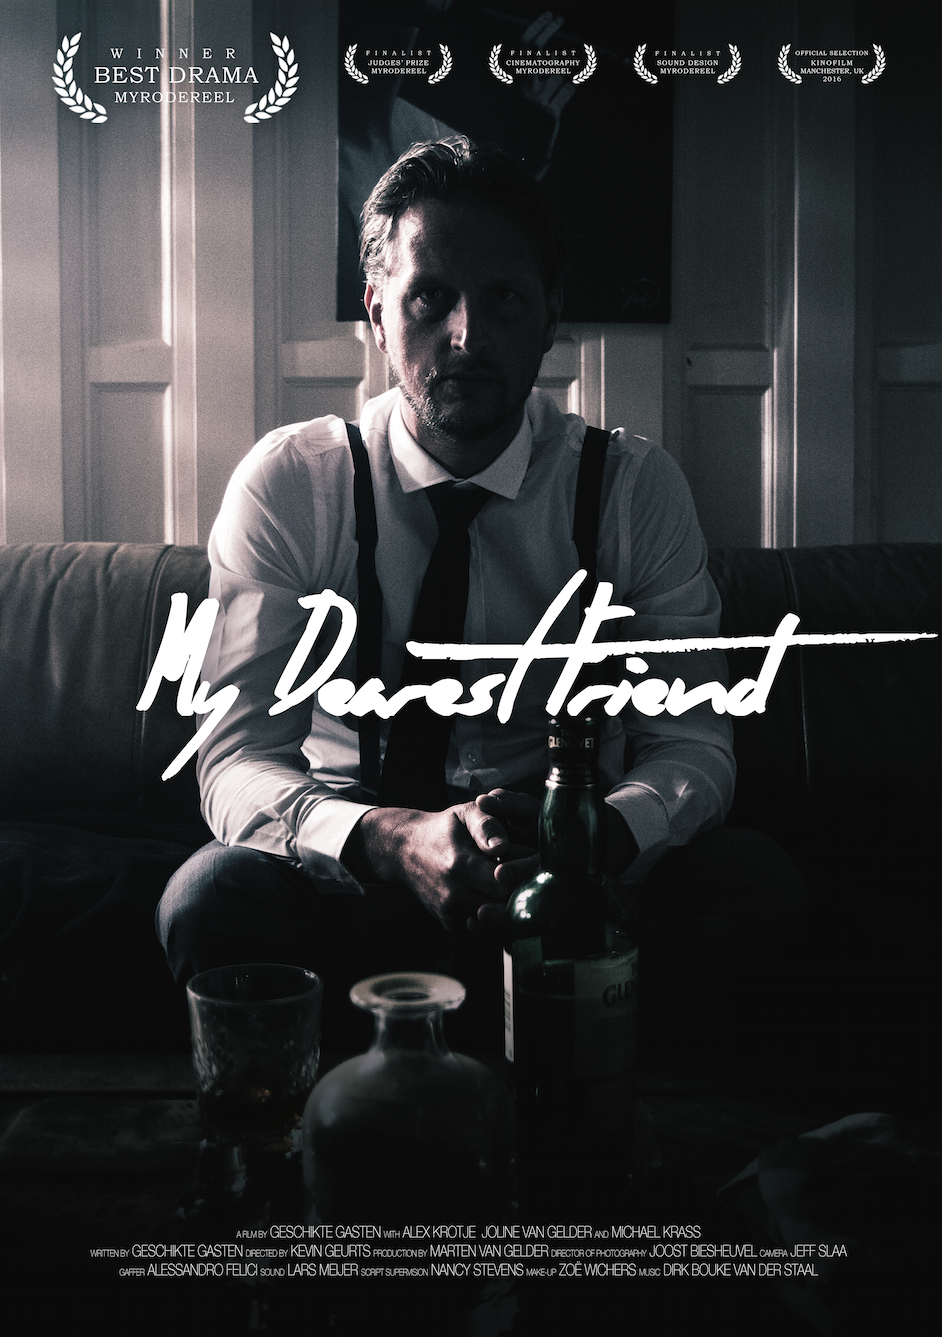 My Dearest Friend Poster